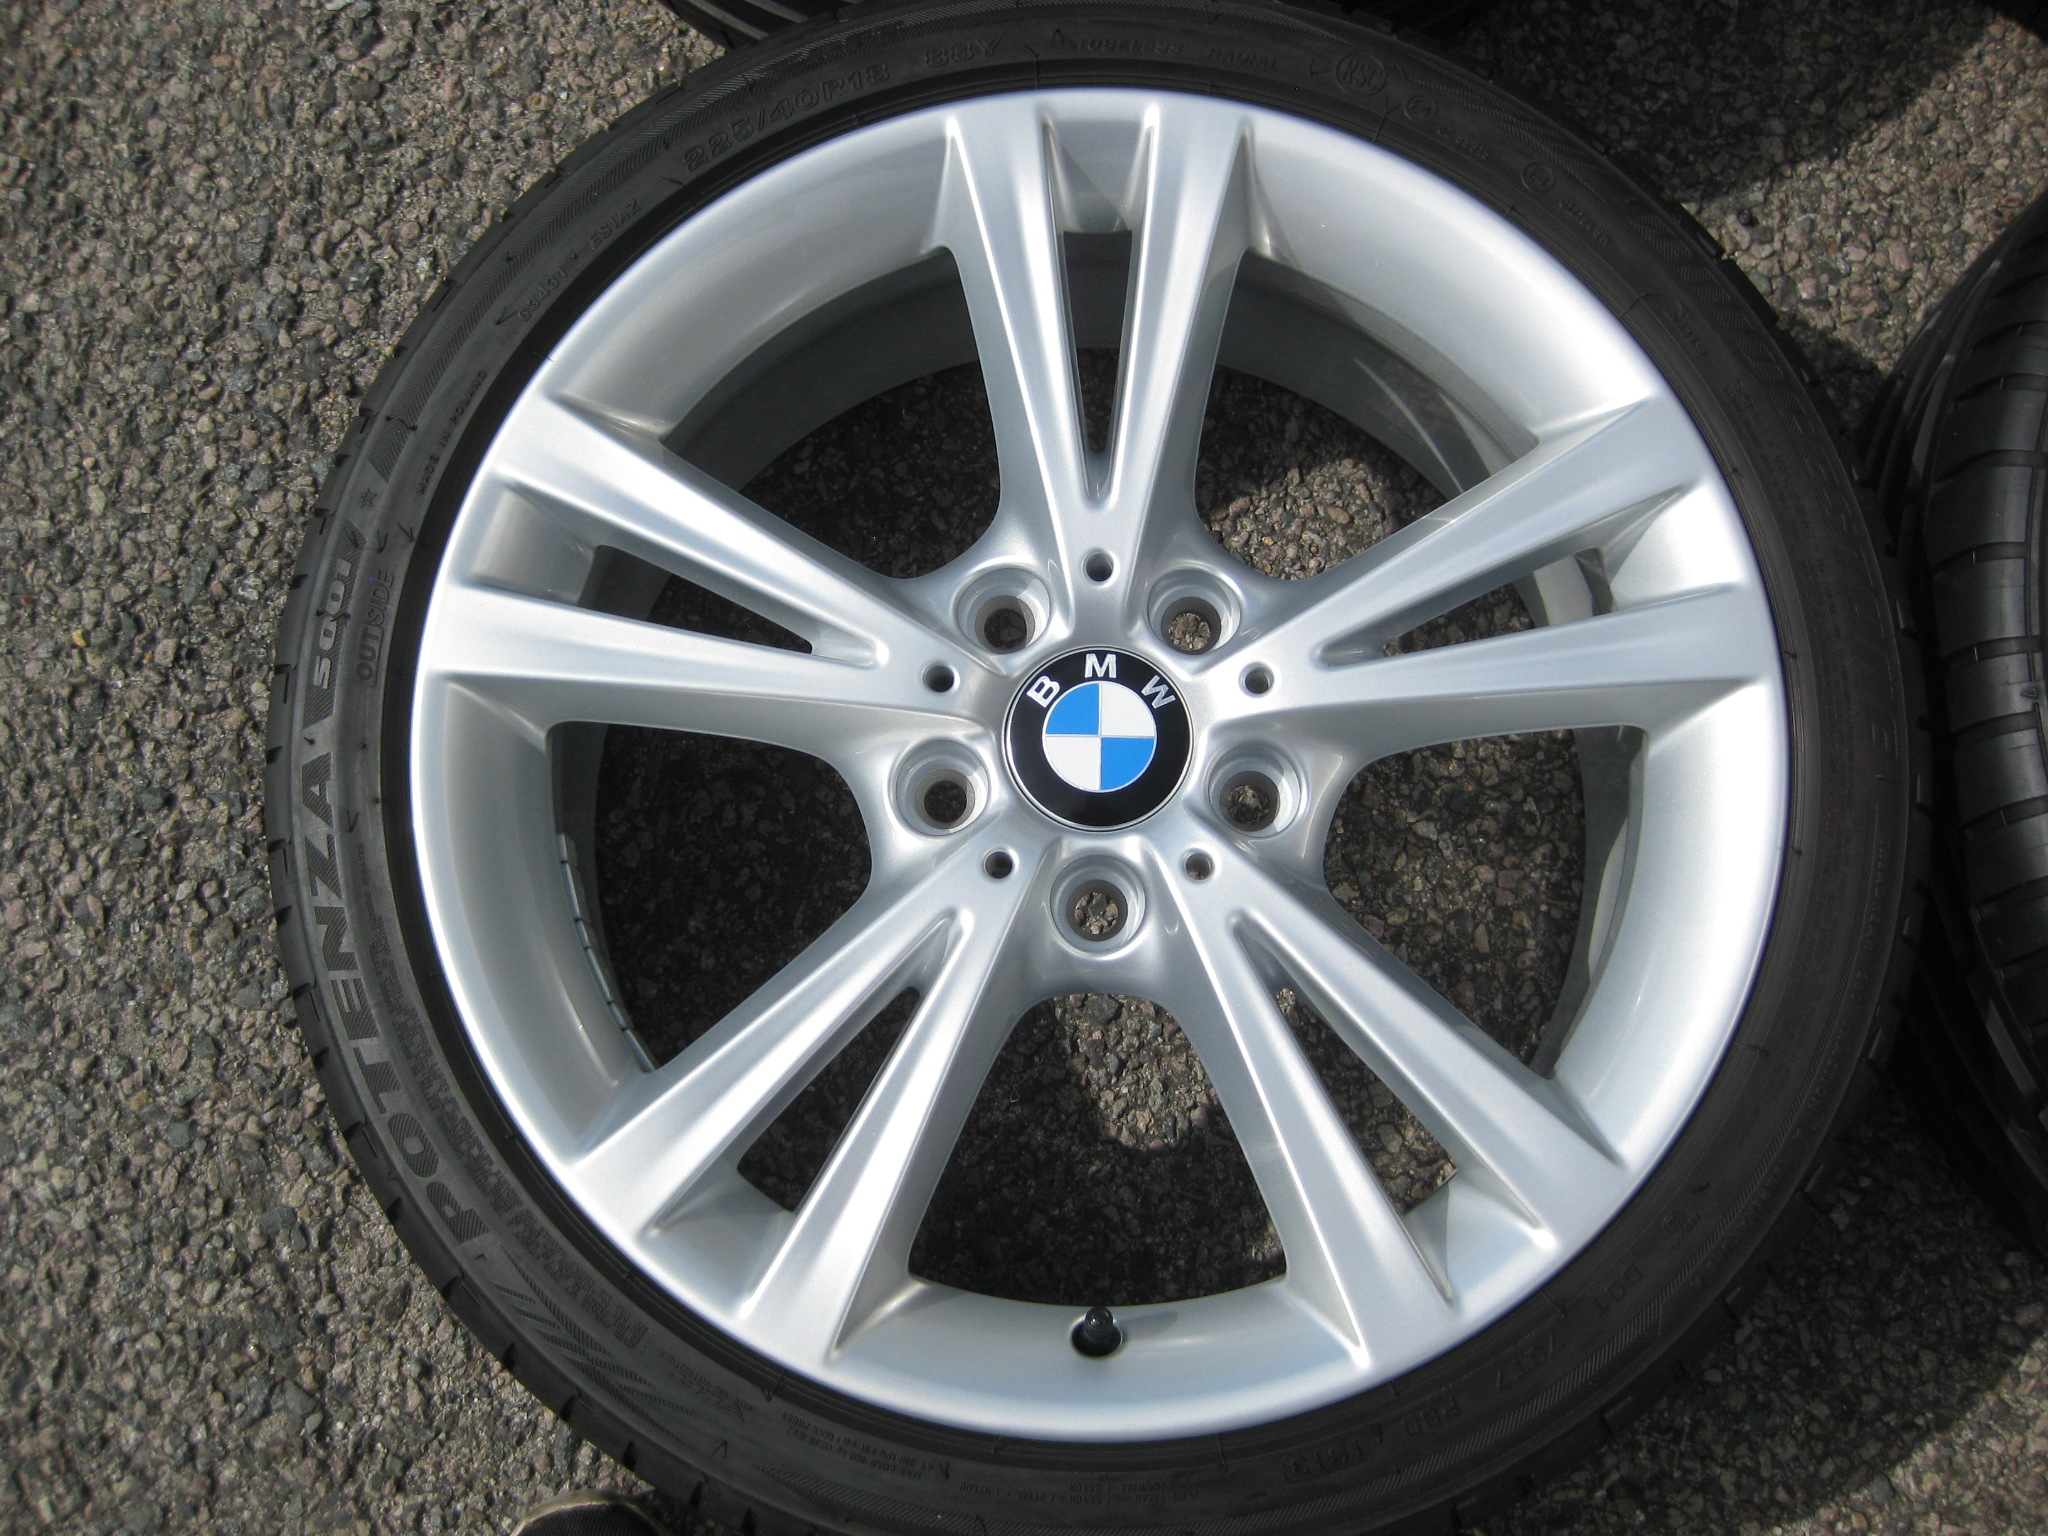 "USED 18"" GENUINE STYLE 385 1 SERIES TWIN SPOKE ALLOY WHEELS,FULLY REFURBED WIDER REAR INC VG BRIDGESTONE RUNFLATS"